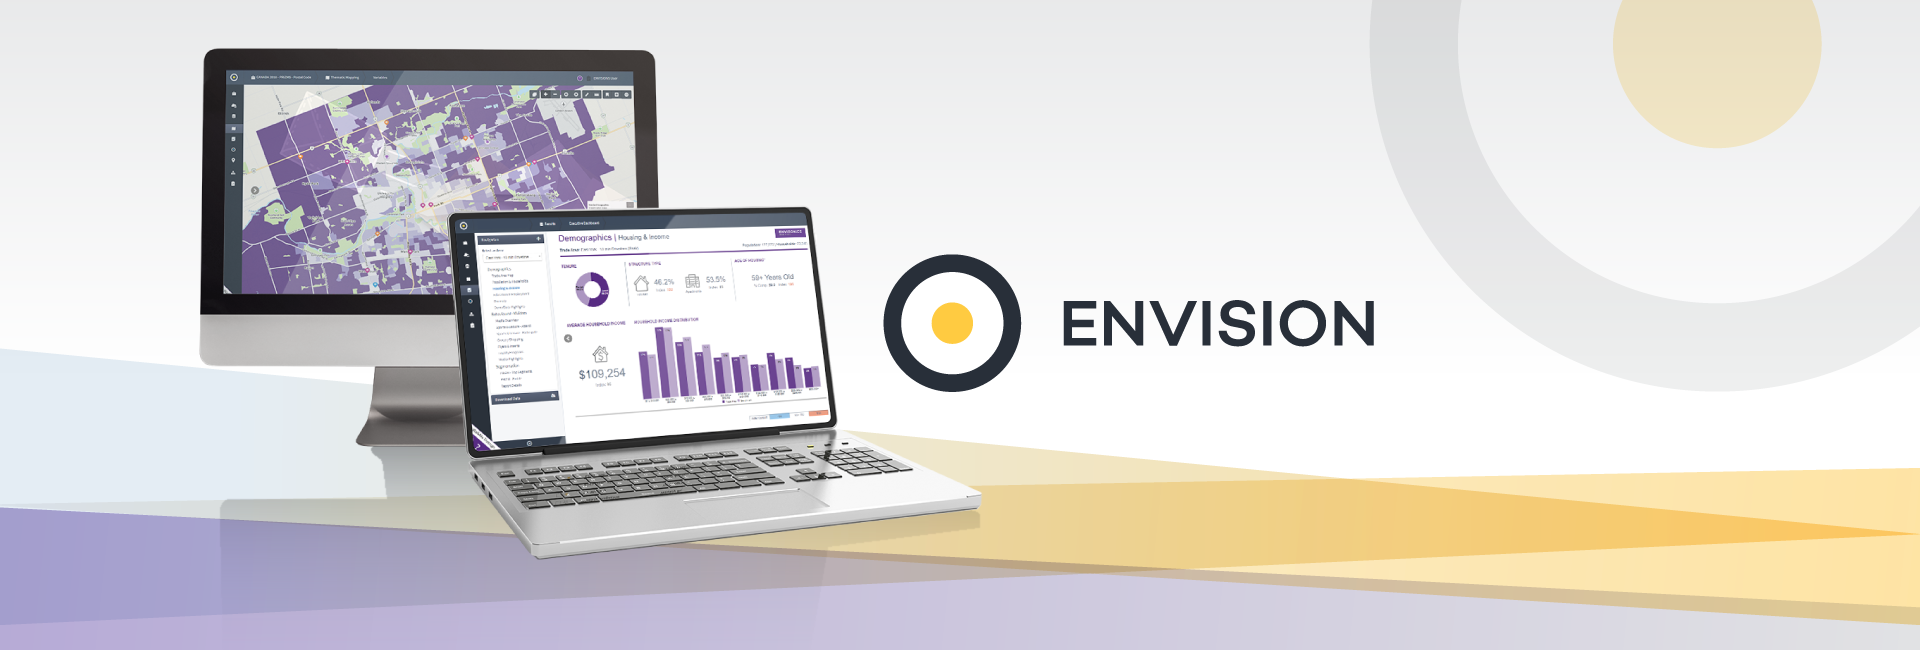 ENVISION-customer-insight-market-intelligence-platform